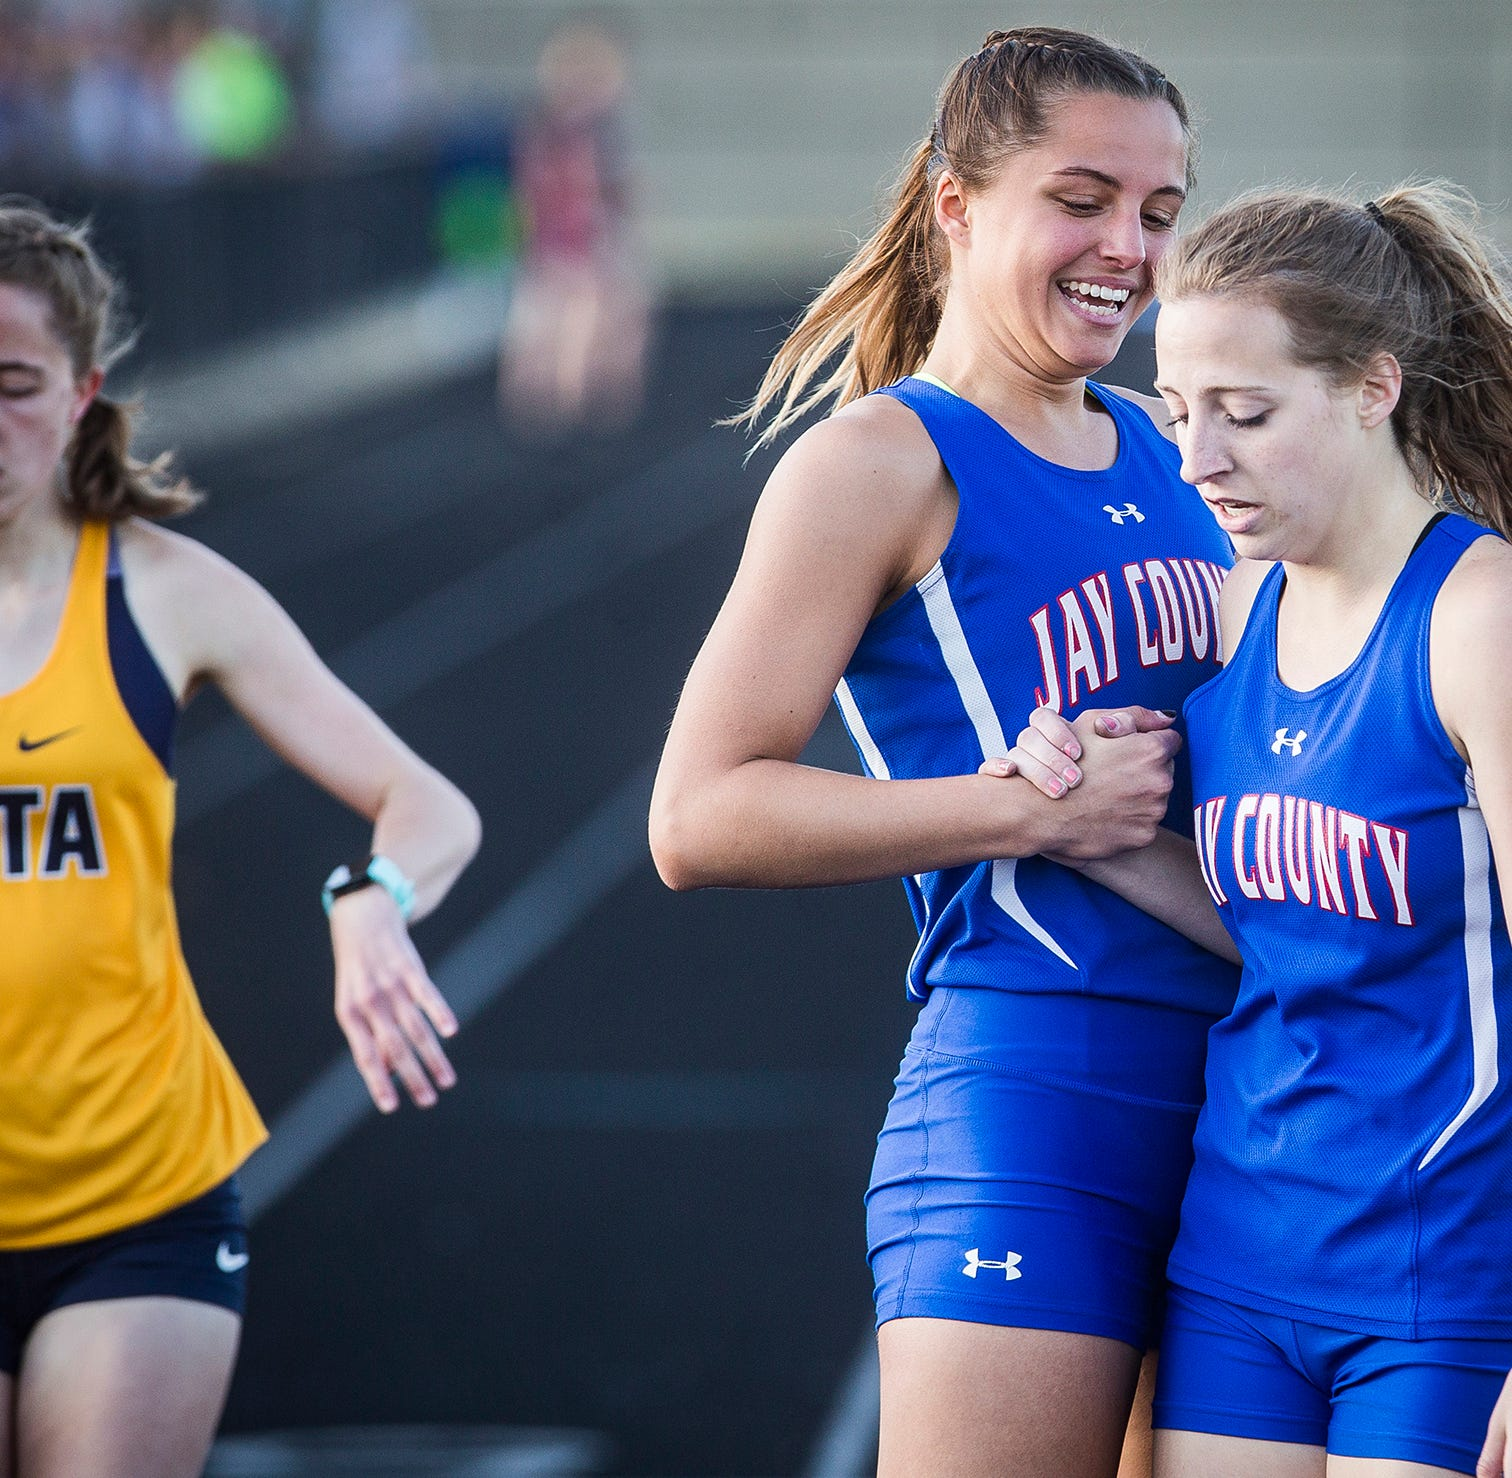 Jay County wins first girls track and field sectional title since 2014